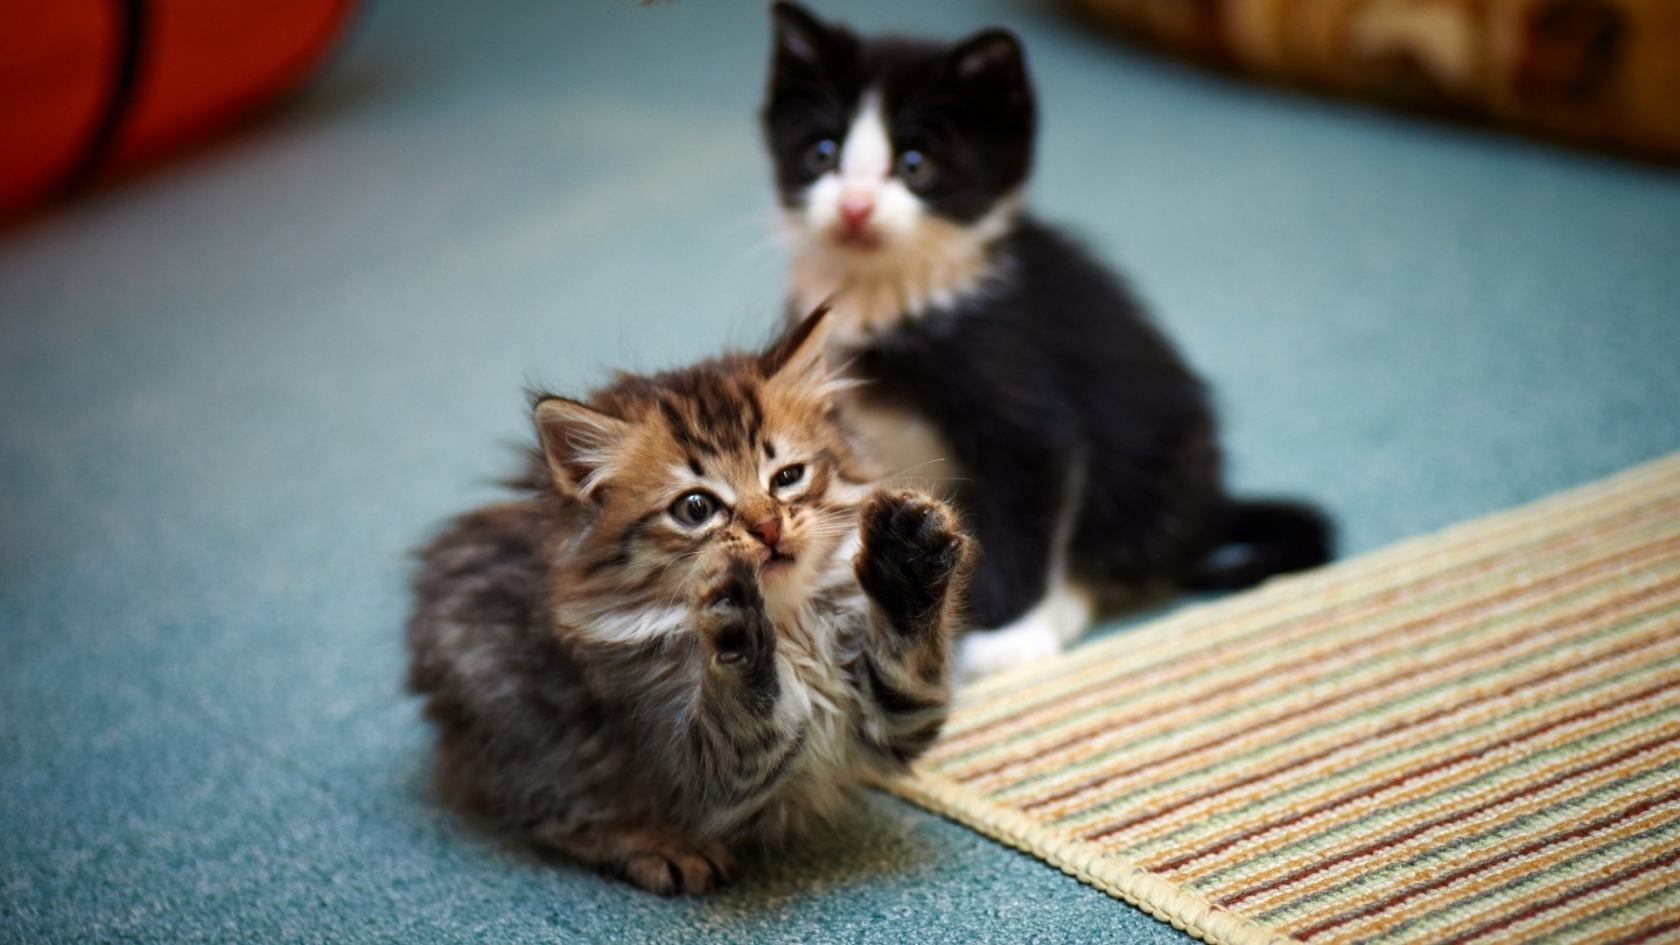 2 Cute Kitties for 1680 x 945 HDTV resolution